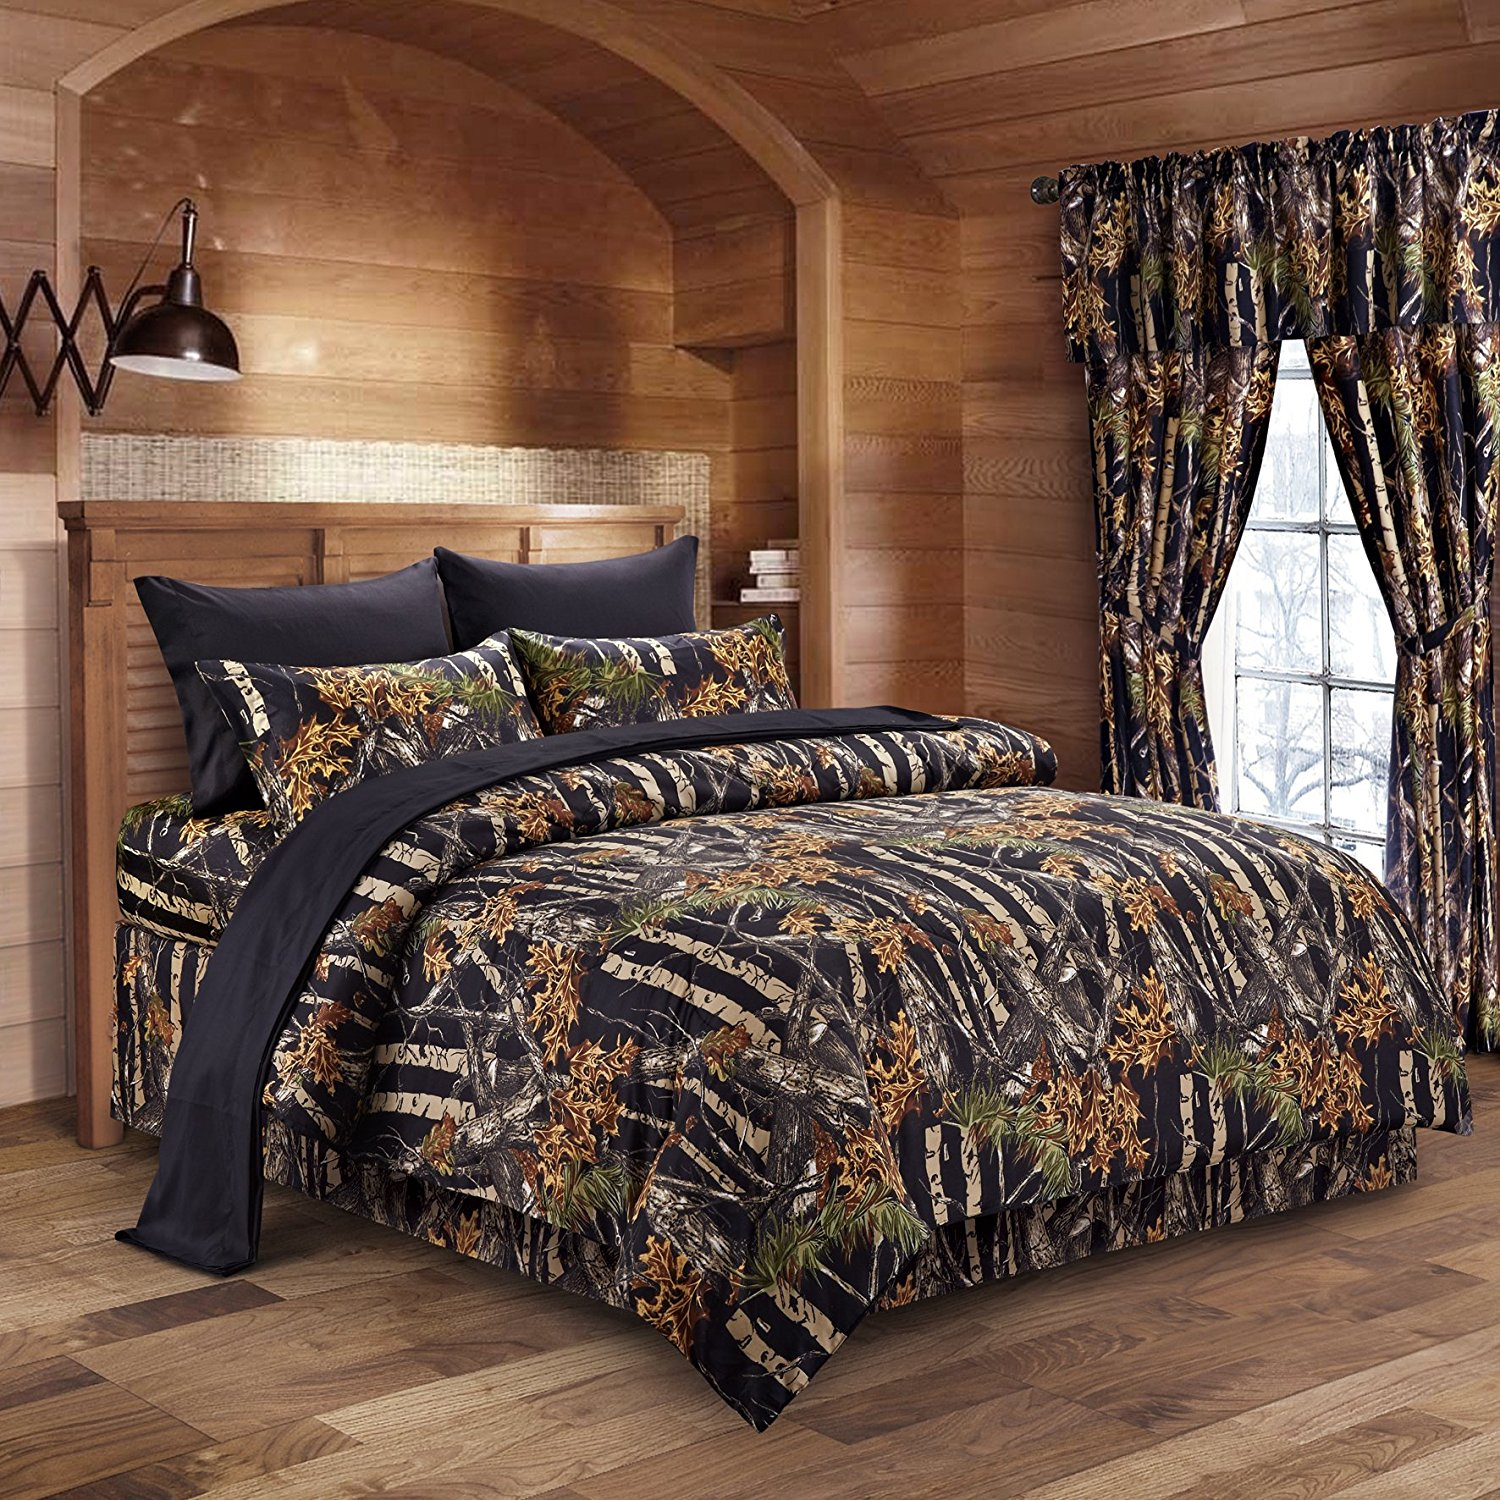 The Woods Black Camouflage Queen 8pc Premium Luxury Comforter, Sheet, Pillowcases, and Bed Skirt Set by Regal Comfort Camo Bedding Set For Hunters Cabin or Rustic Lodge Teens Boys and Girls